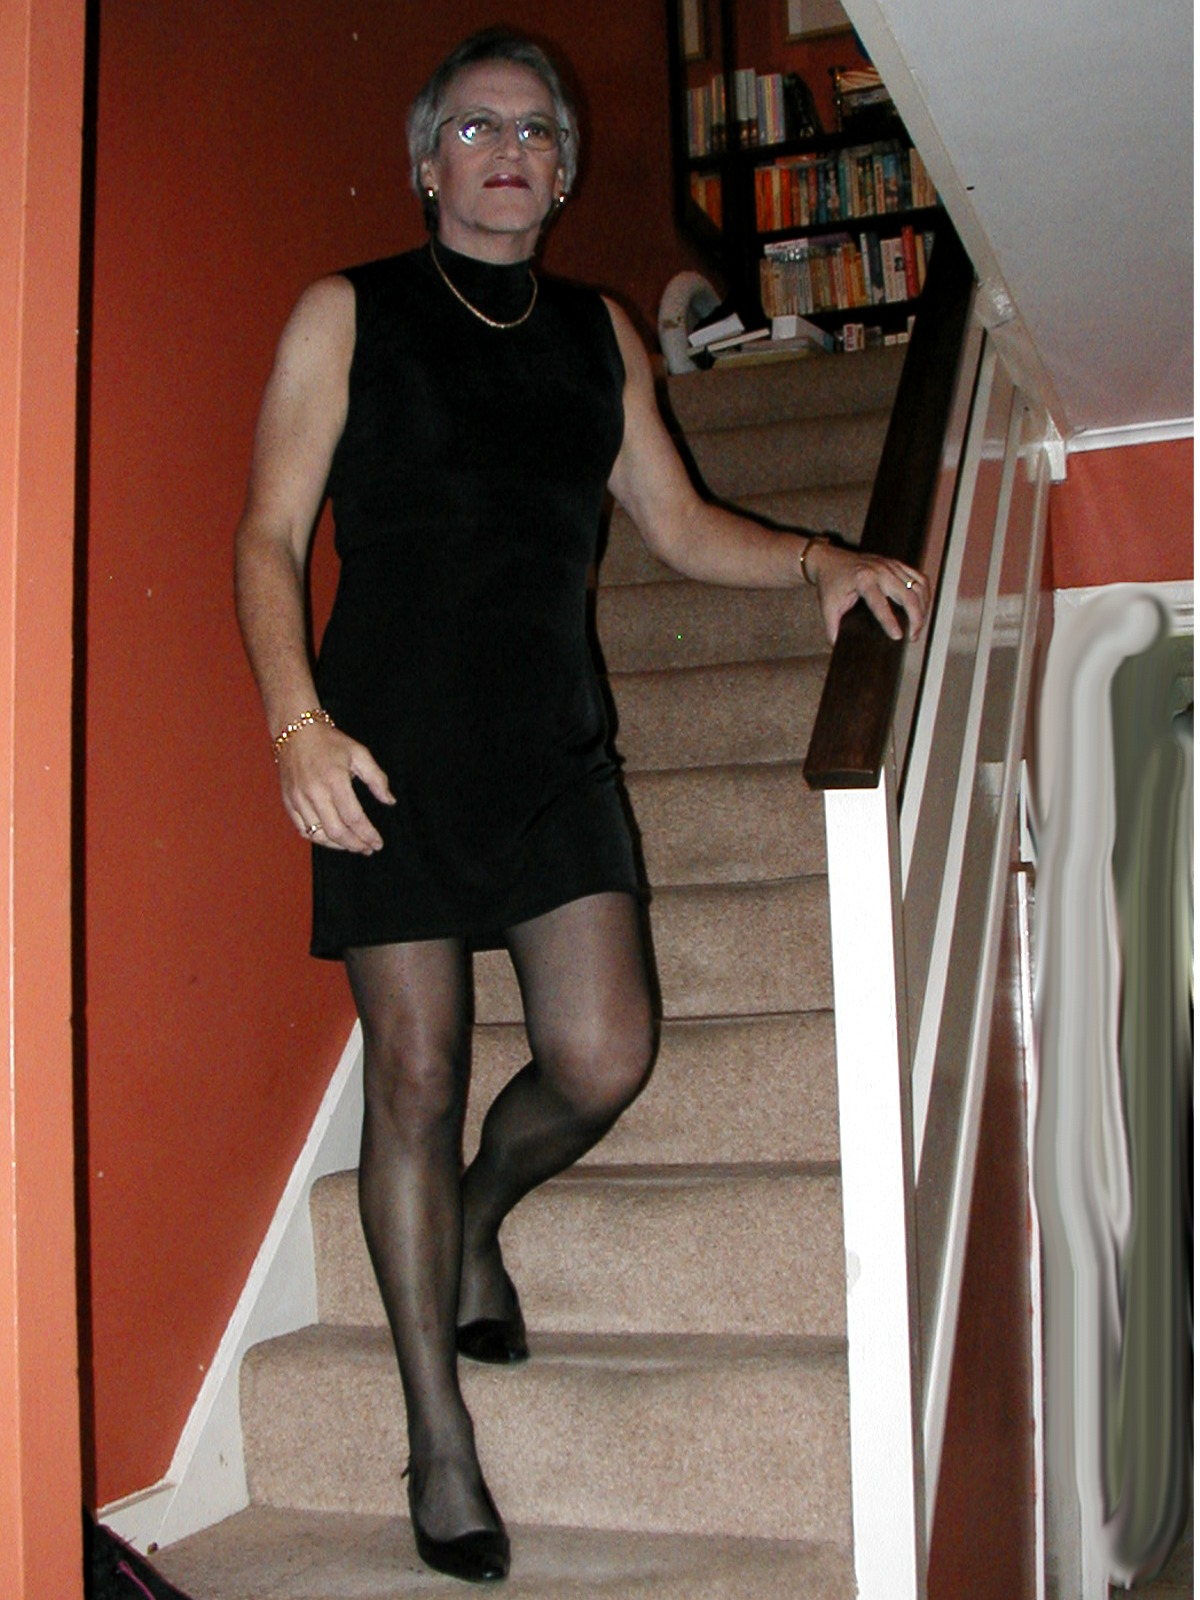 Crossdresser pantyhose runs, oral sex with older women